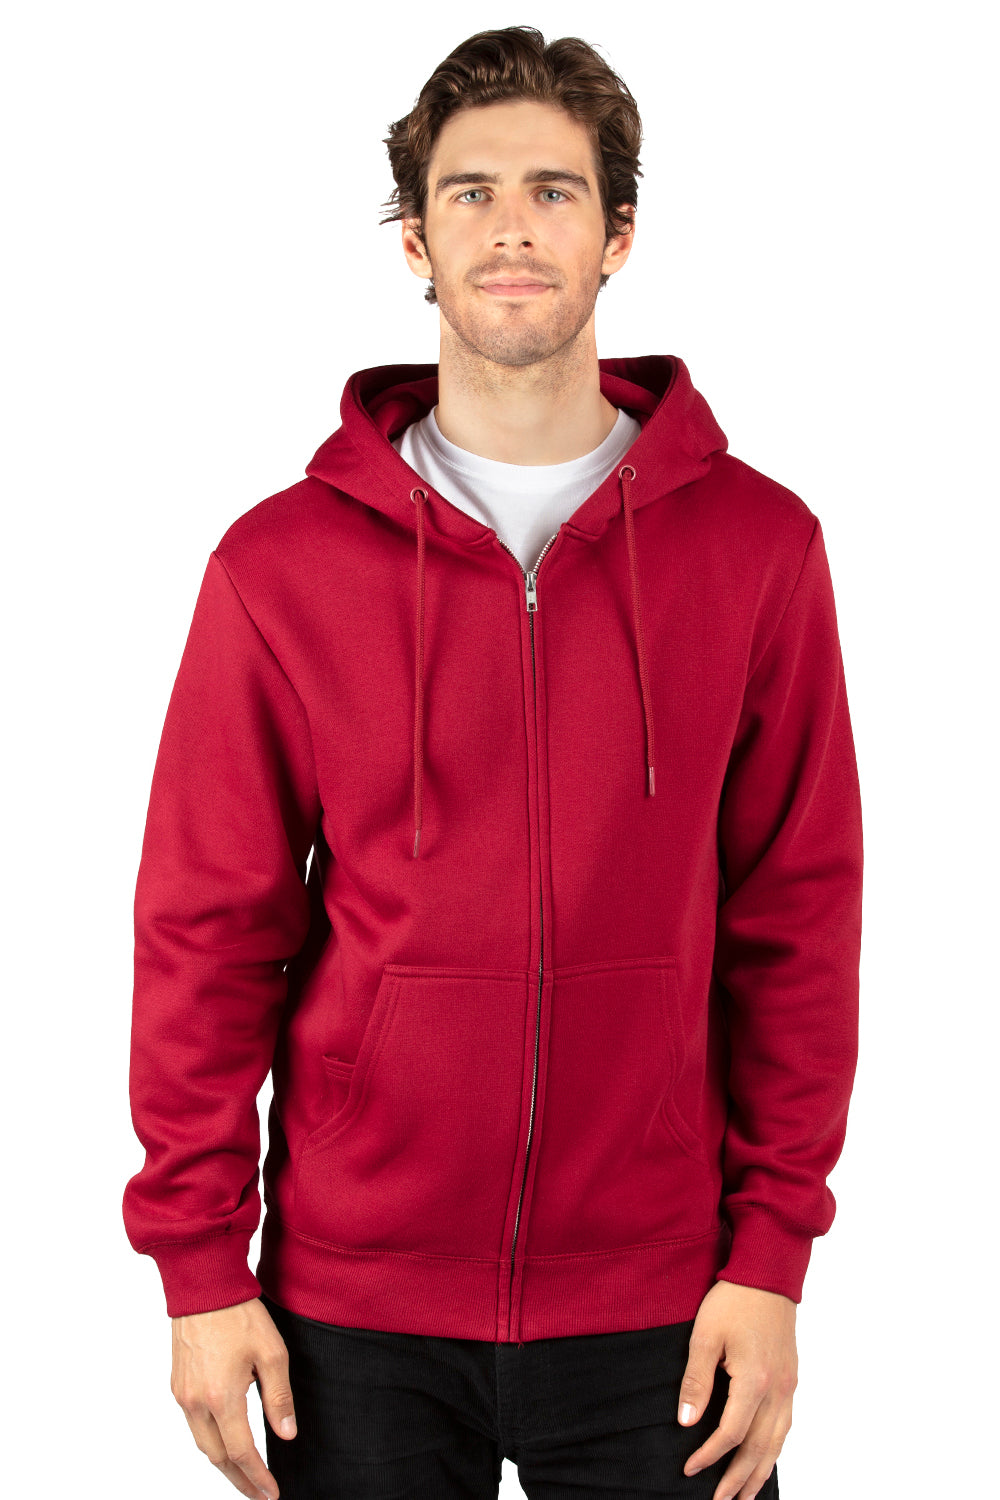 Threadfast Apparel 320Z Mens Ultimate Fleece Full Zip Hooded Sweatshirt Hoodie Burgundy Front